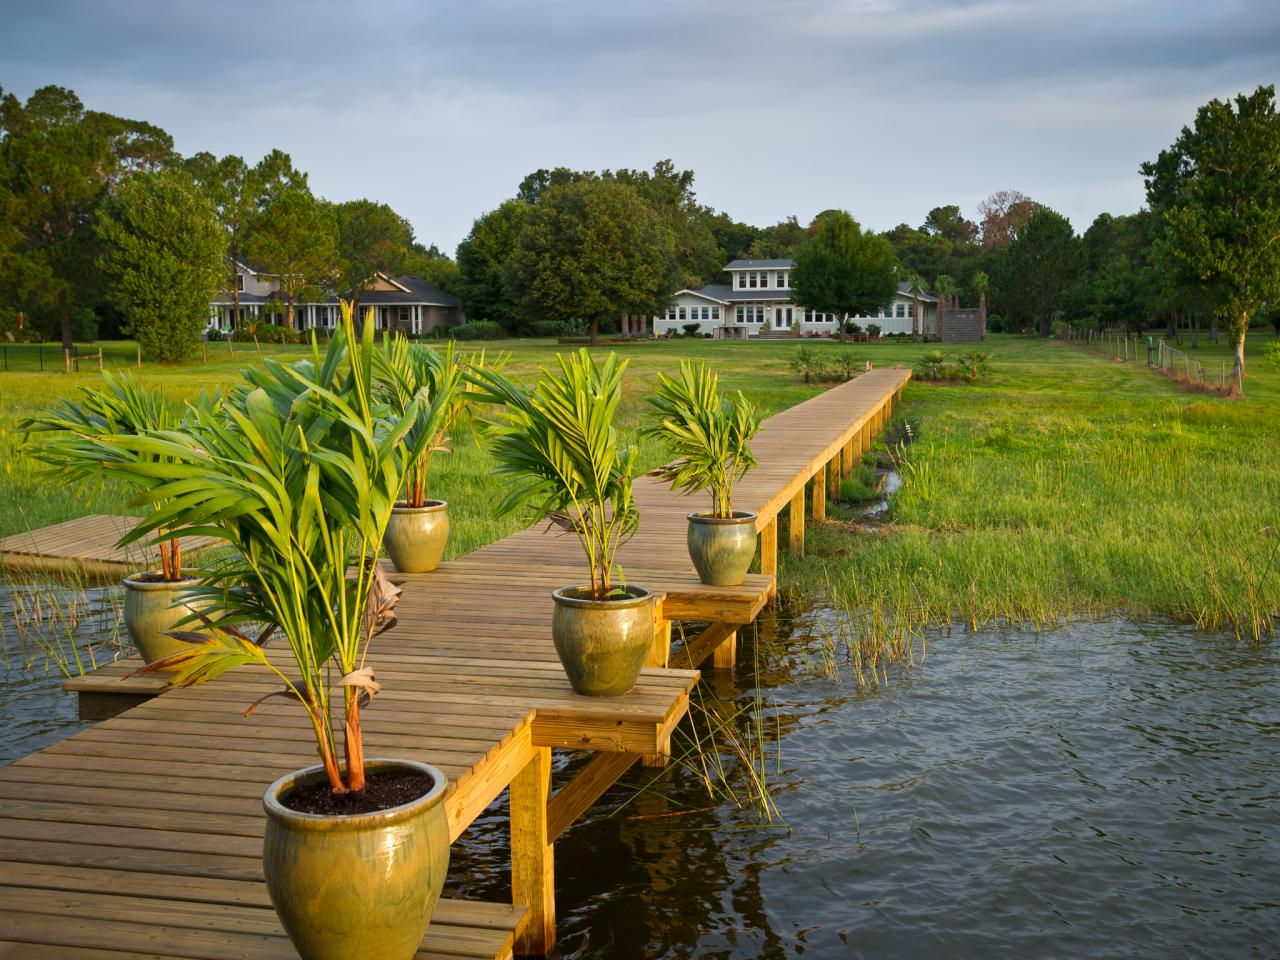 Dock Pictures From Blog Cabin 2014 Diy Network Blog